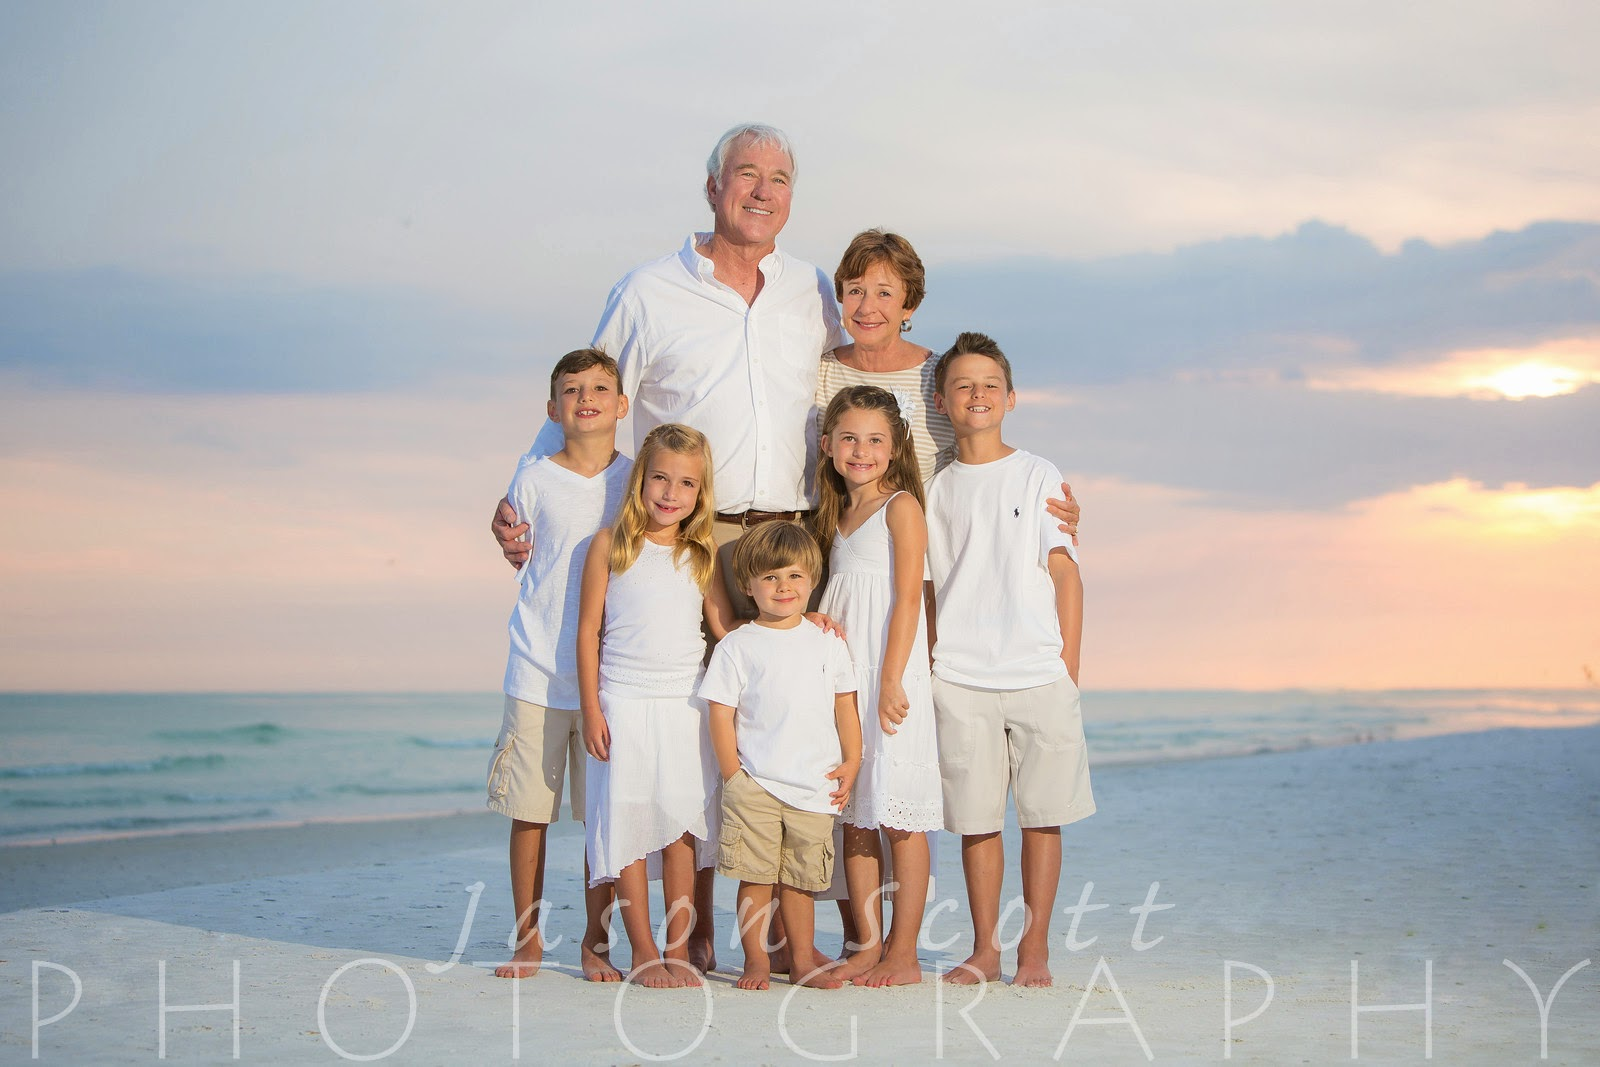 We Will Meet You And Your Family At Siesta Key Longboat Venice Beach Englewood Or Another Local Location Of Choosing